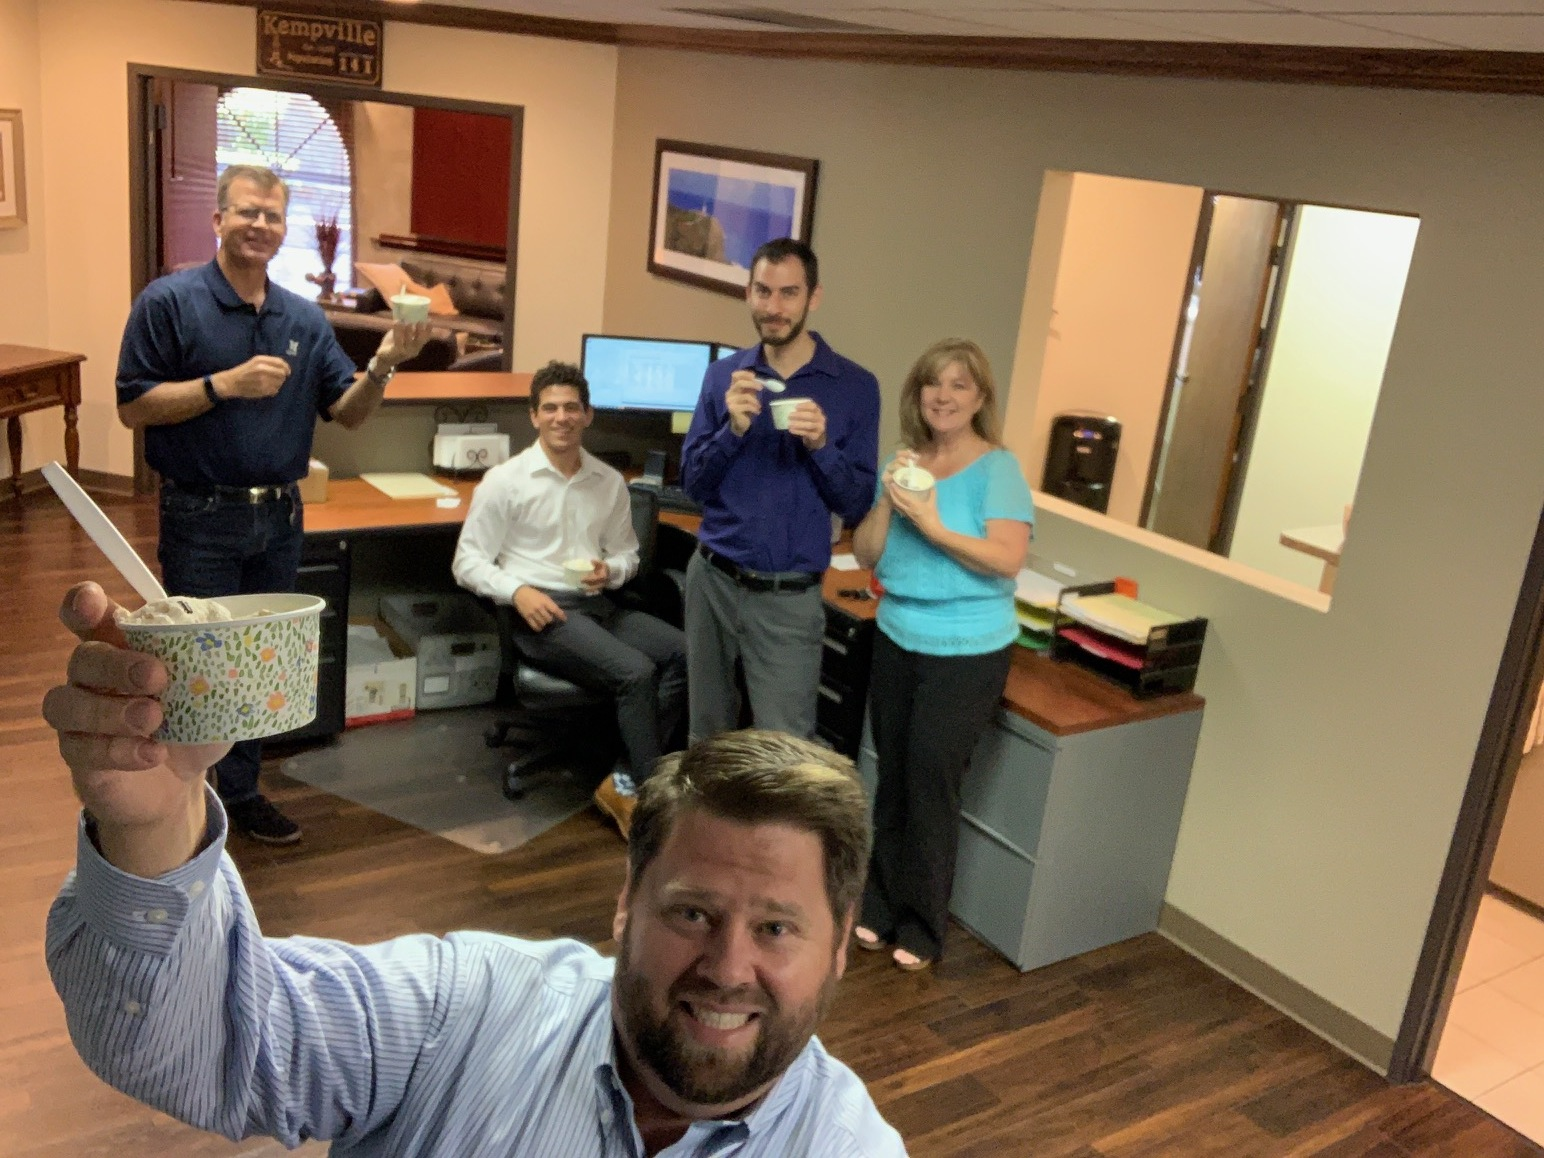 The KFM Team (Rob, Otto, Wyatt, Lissa, and Patrick in front) taking a break from all the hard work to have an impromptu ice cream party.